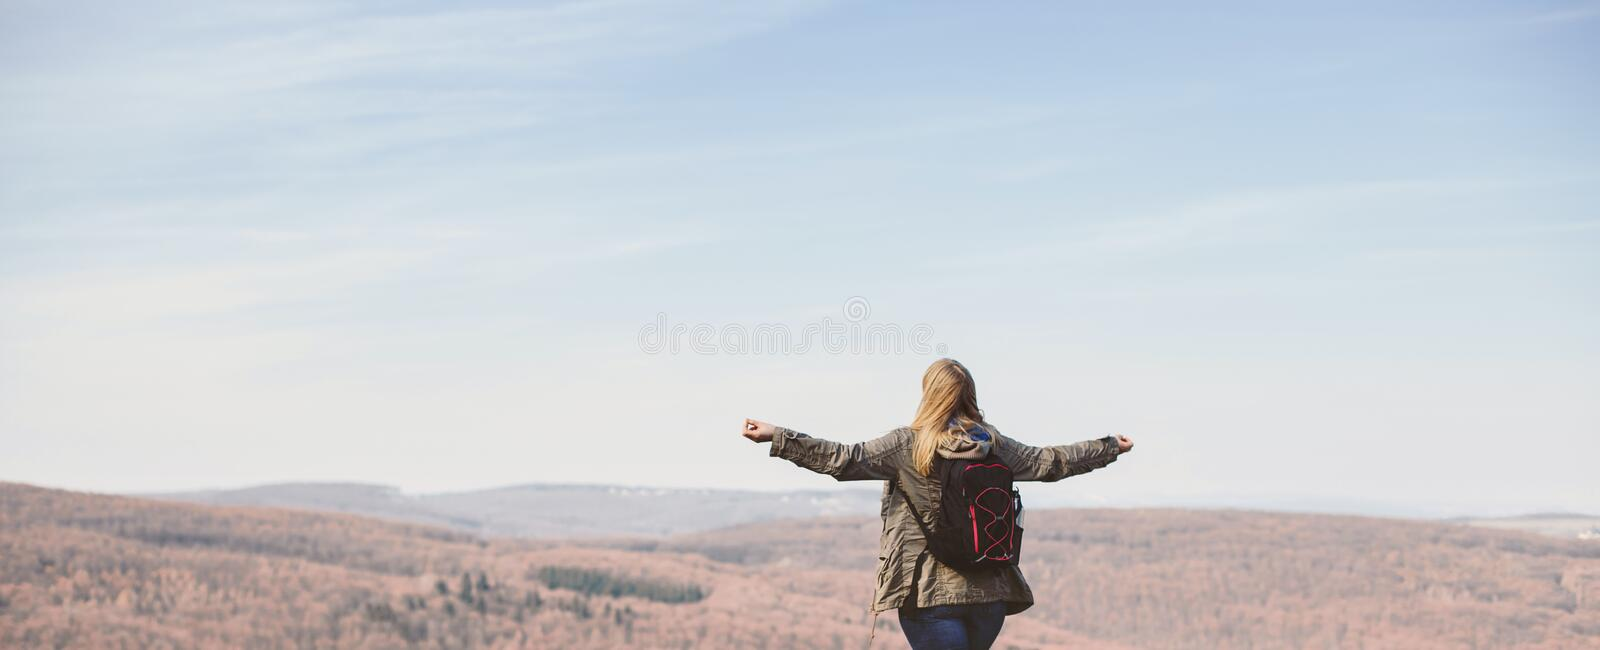 Woman is hiking and trekking outside on a hill. Tourism, vacation and fitness activity concept stock photo